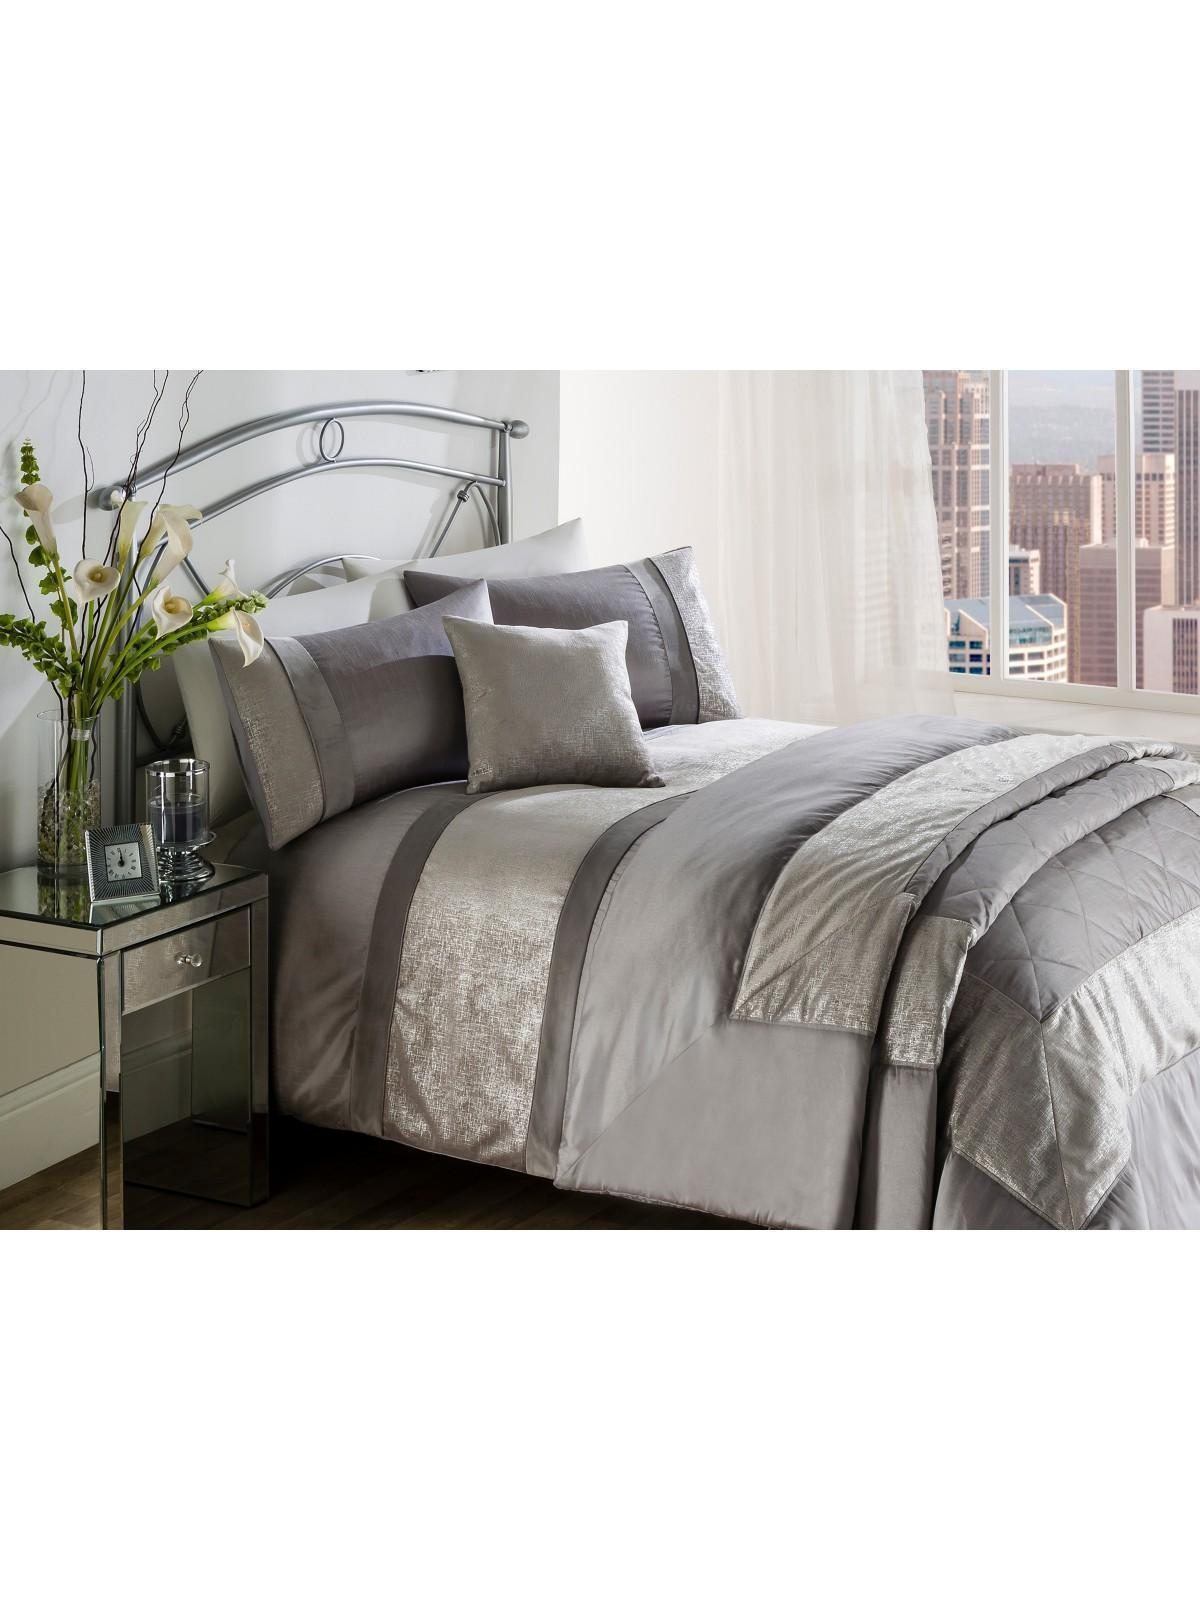 kingsize grey double metallic winona super king set bedding quilt duvet cover single itm